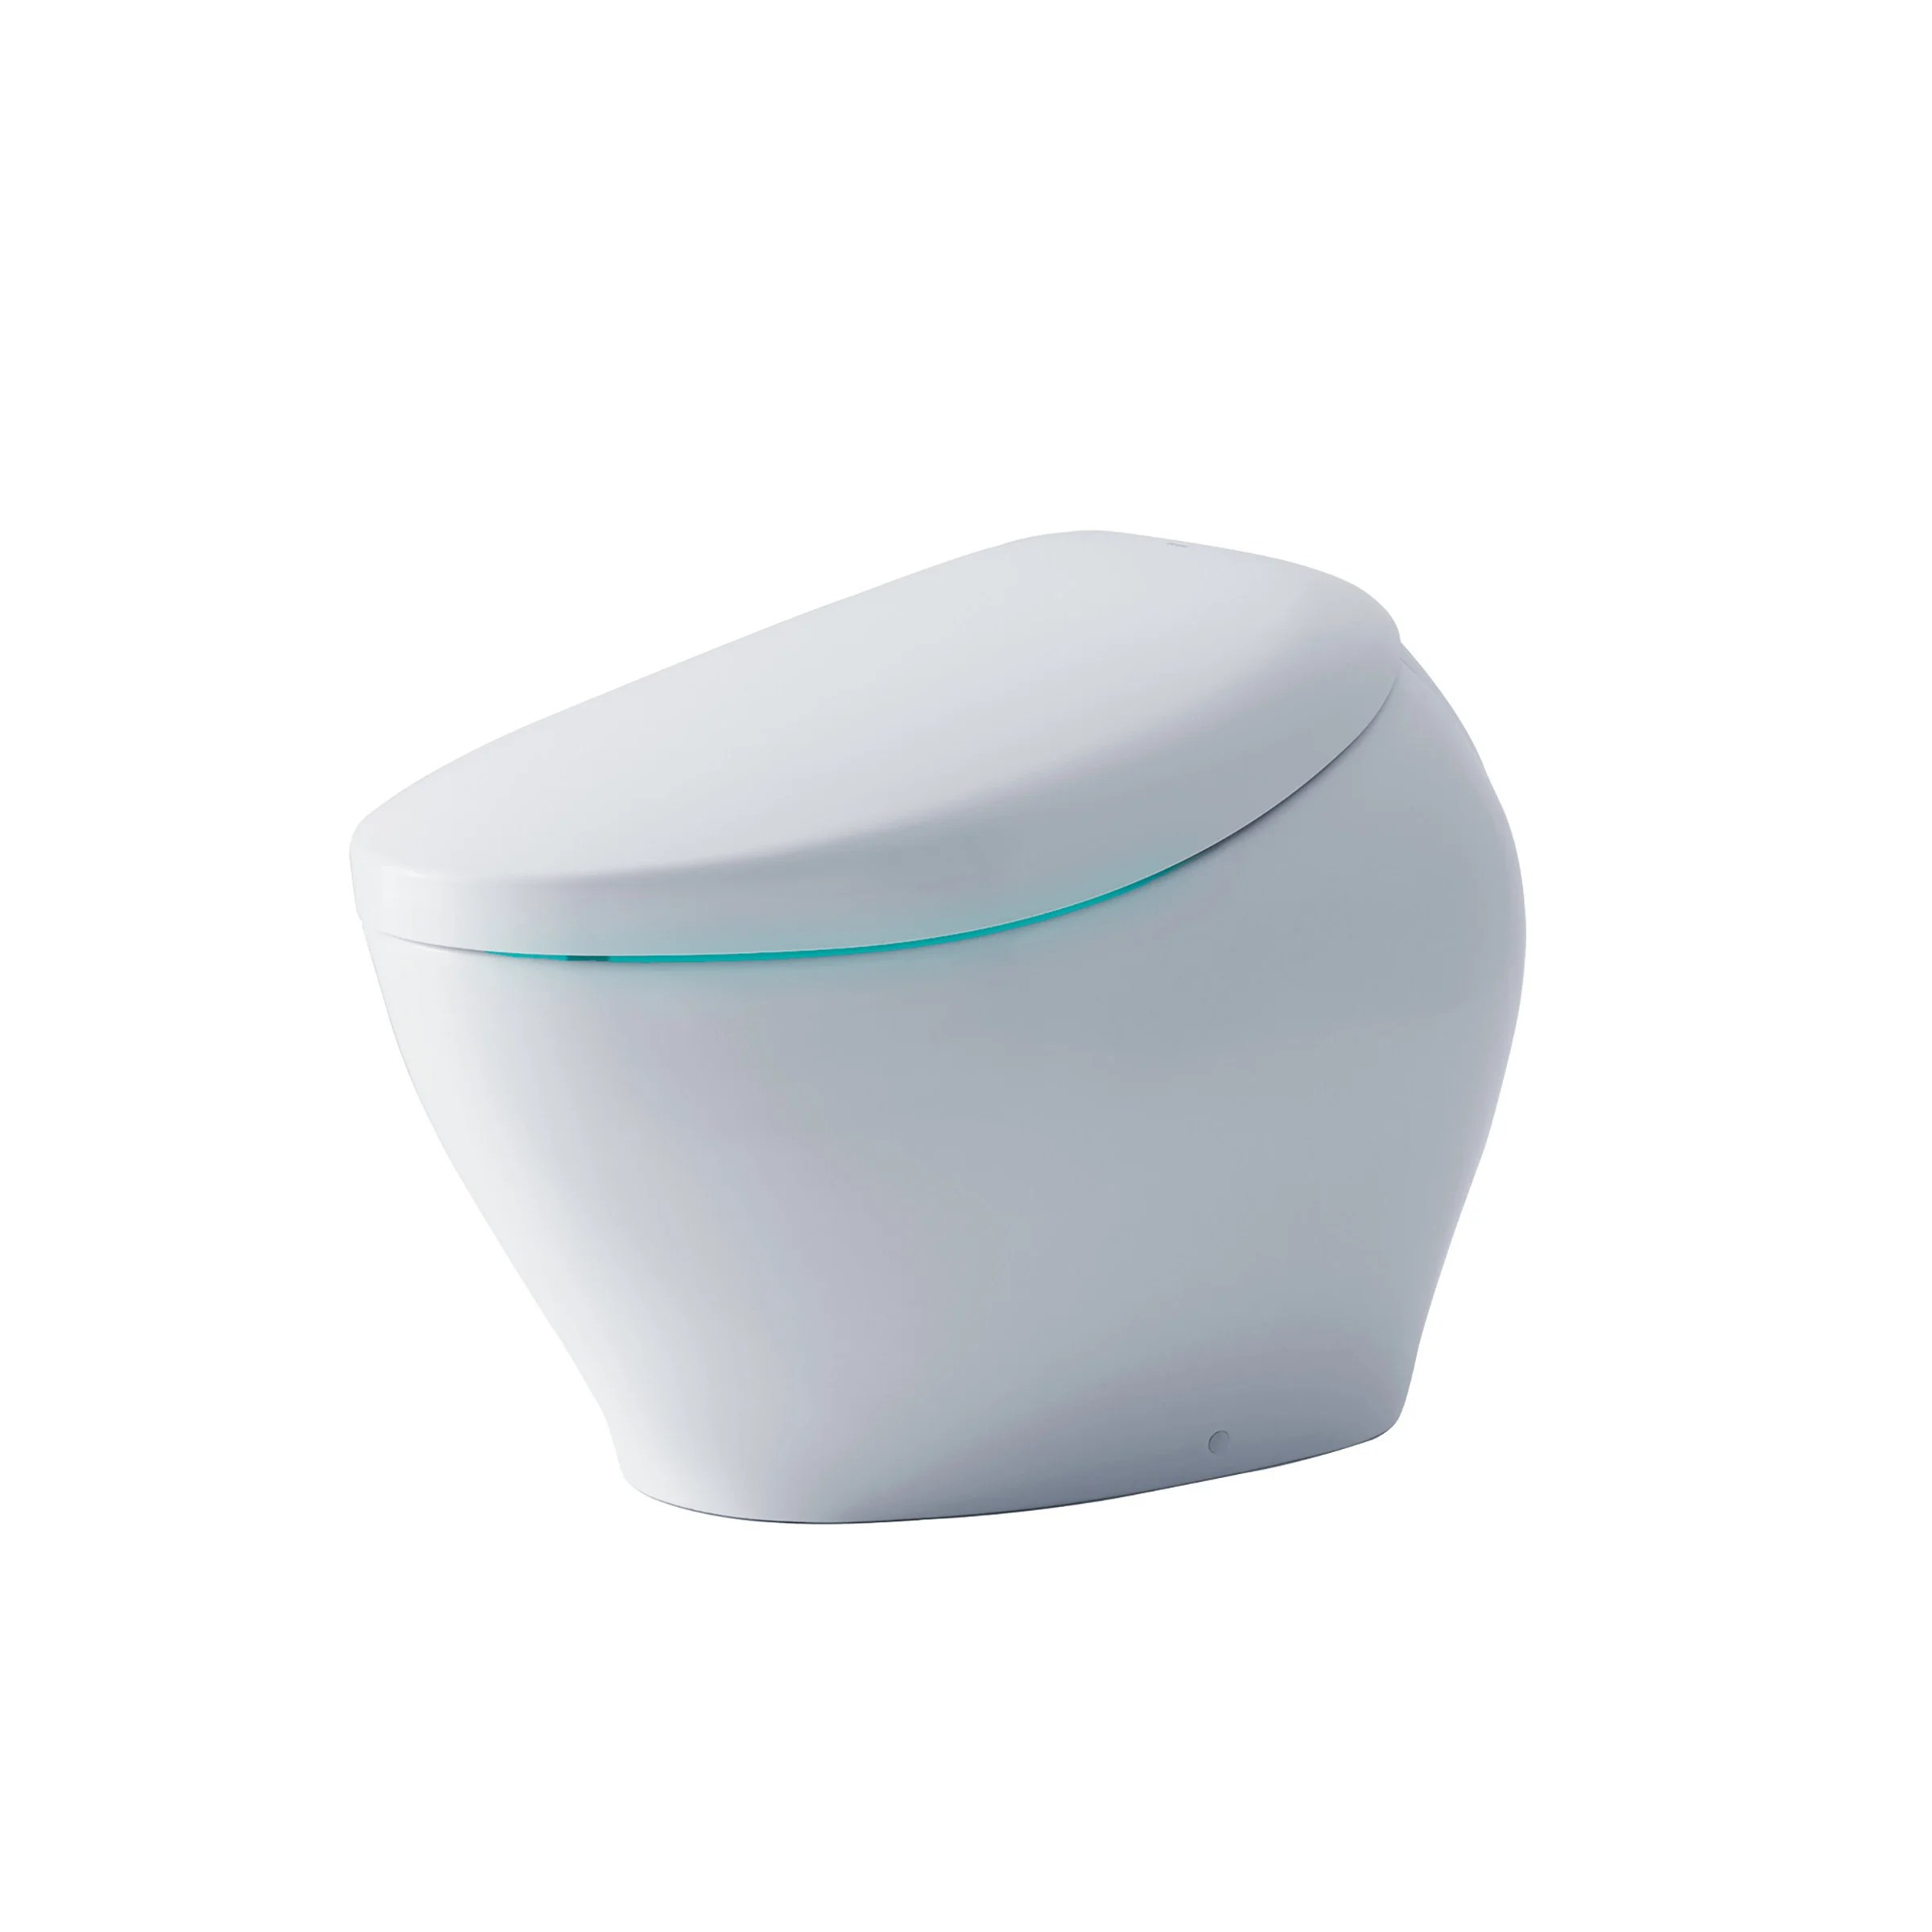 Toilette Toto Toto S Innovations For The Bathroom On Display At Ces 2019